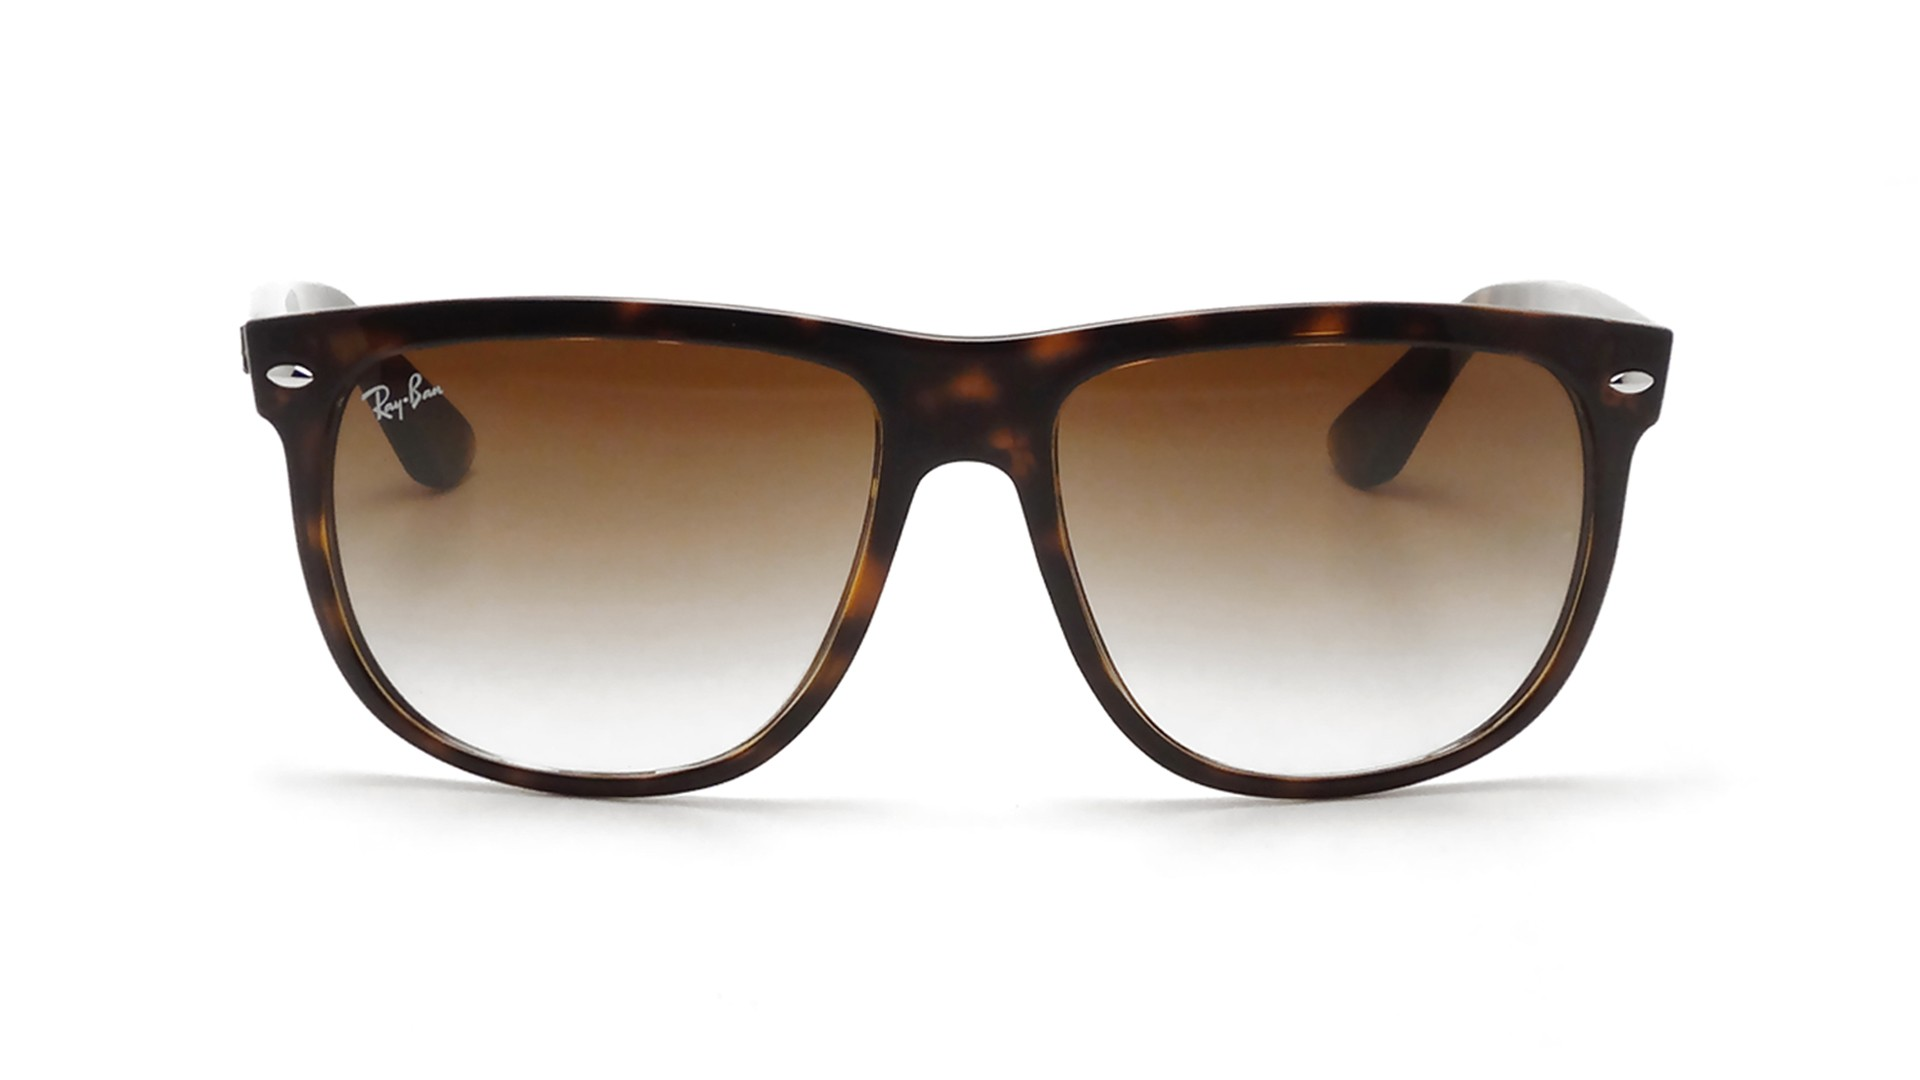 5ed88968932a Ray-Ban RB4147 710 51 56-15 Tortoise